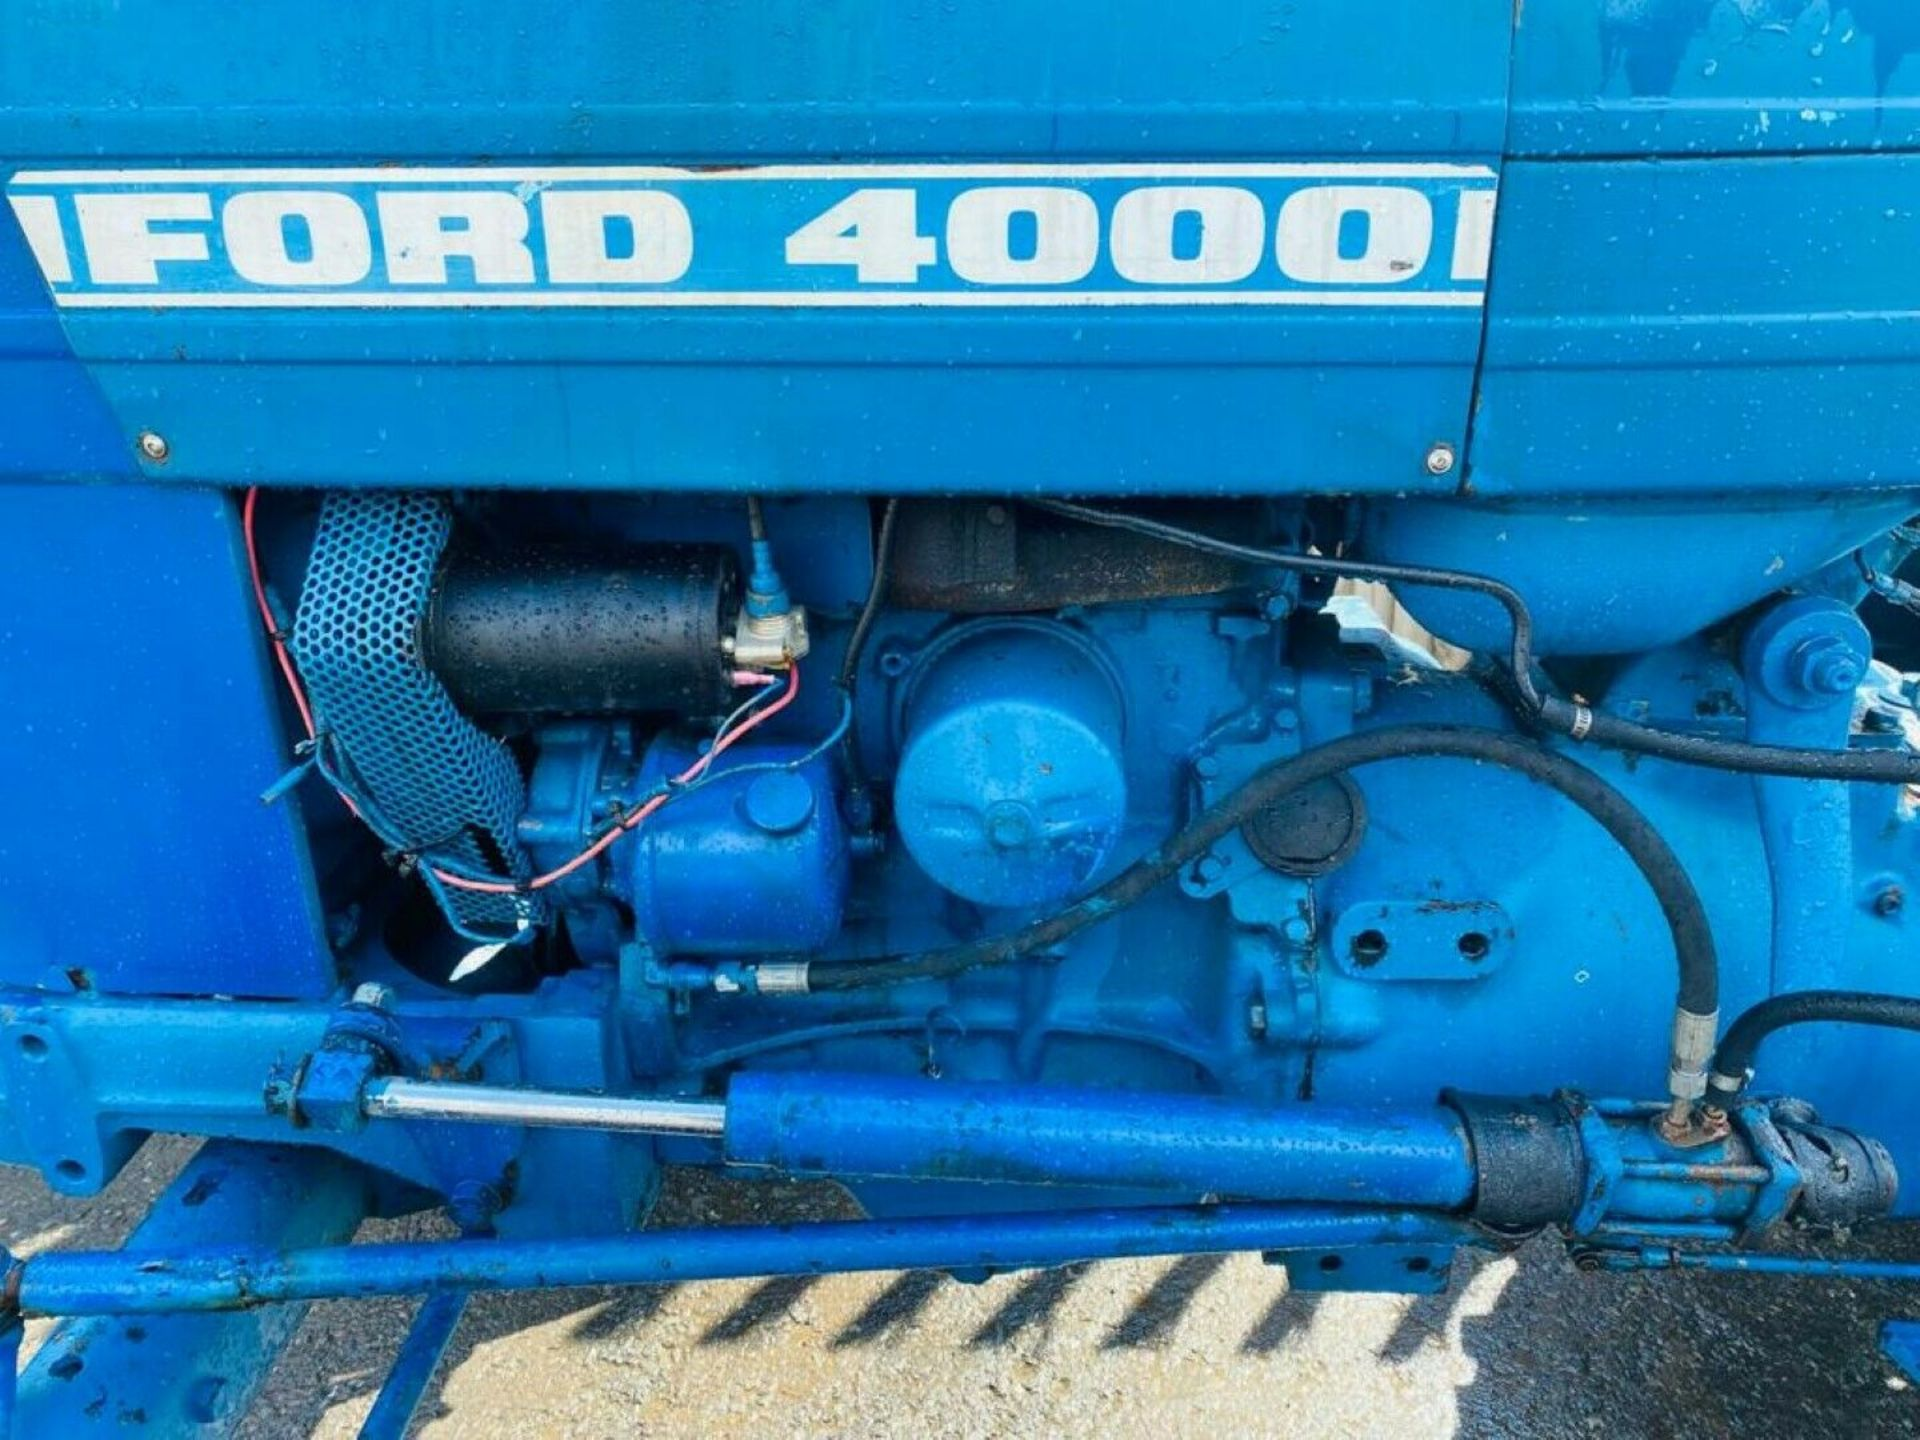 Ford 4000 Tractor 1969 - Image 11 of 12